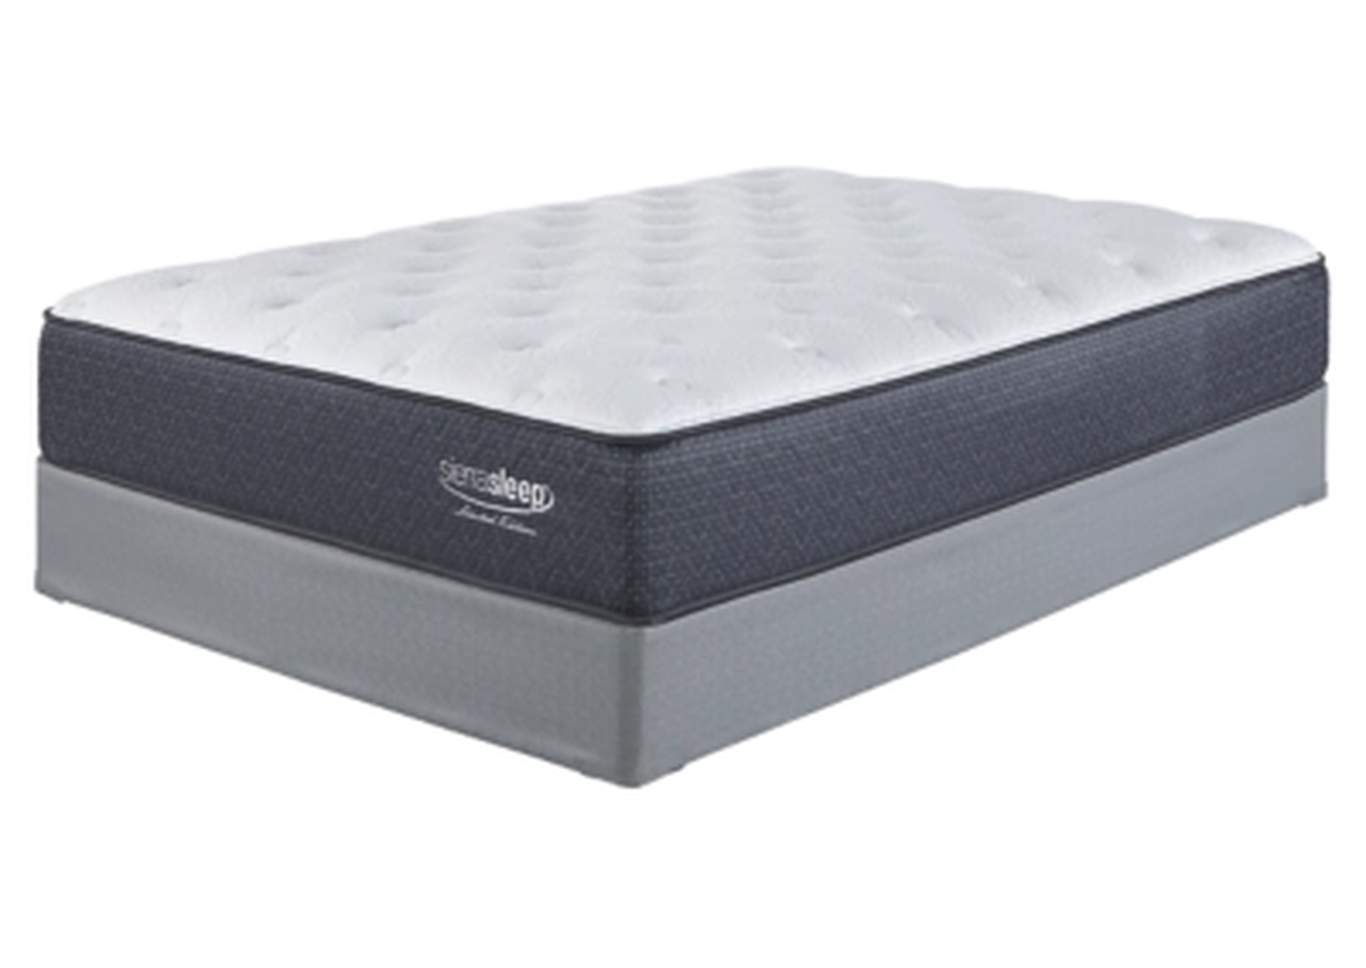 Limited Edition Plush White Twin Mattress w/Foundation,Sierra Sleep